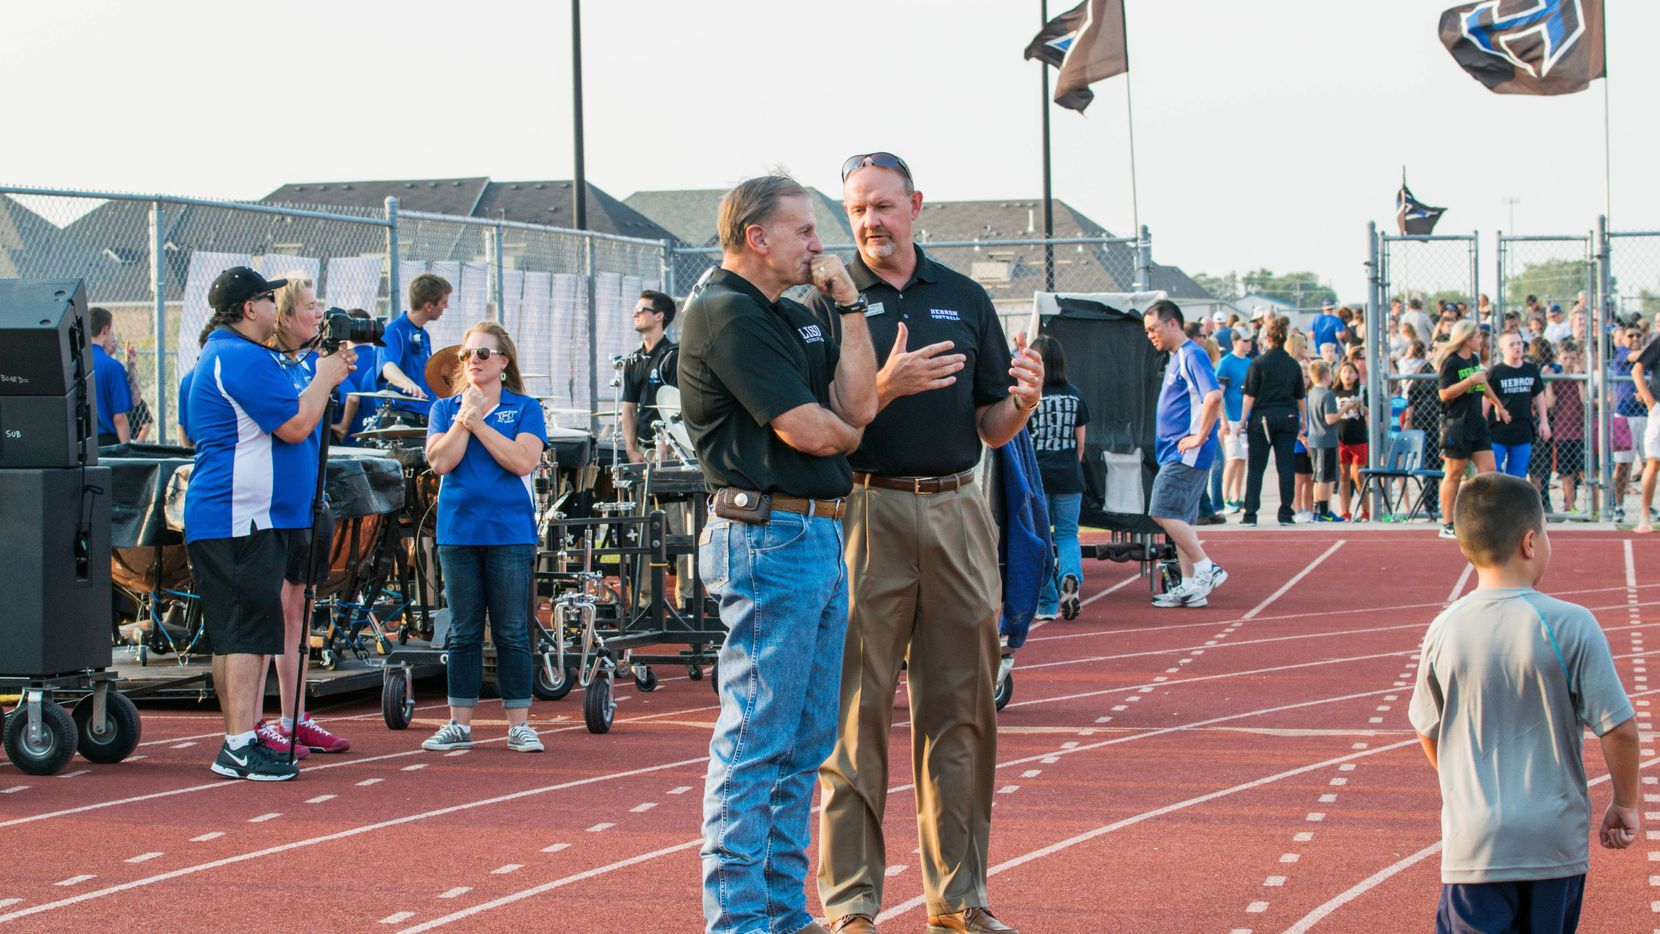 Lewisville ISD athletic director Tim Ford (left) talks to former Hebron principal Scot Finch during a football game in 2015. (Photo courtesy of Lewisville ISD)